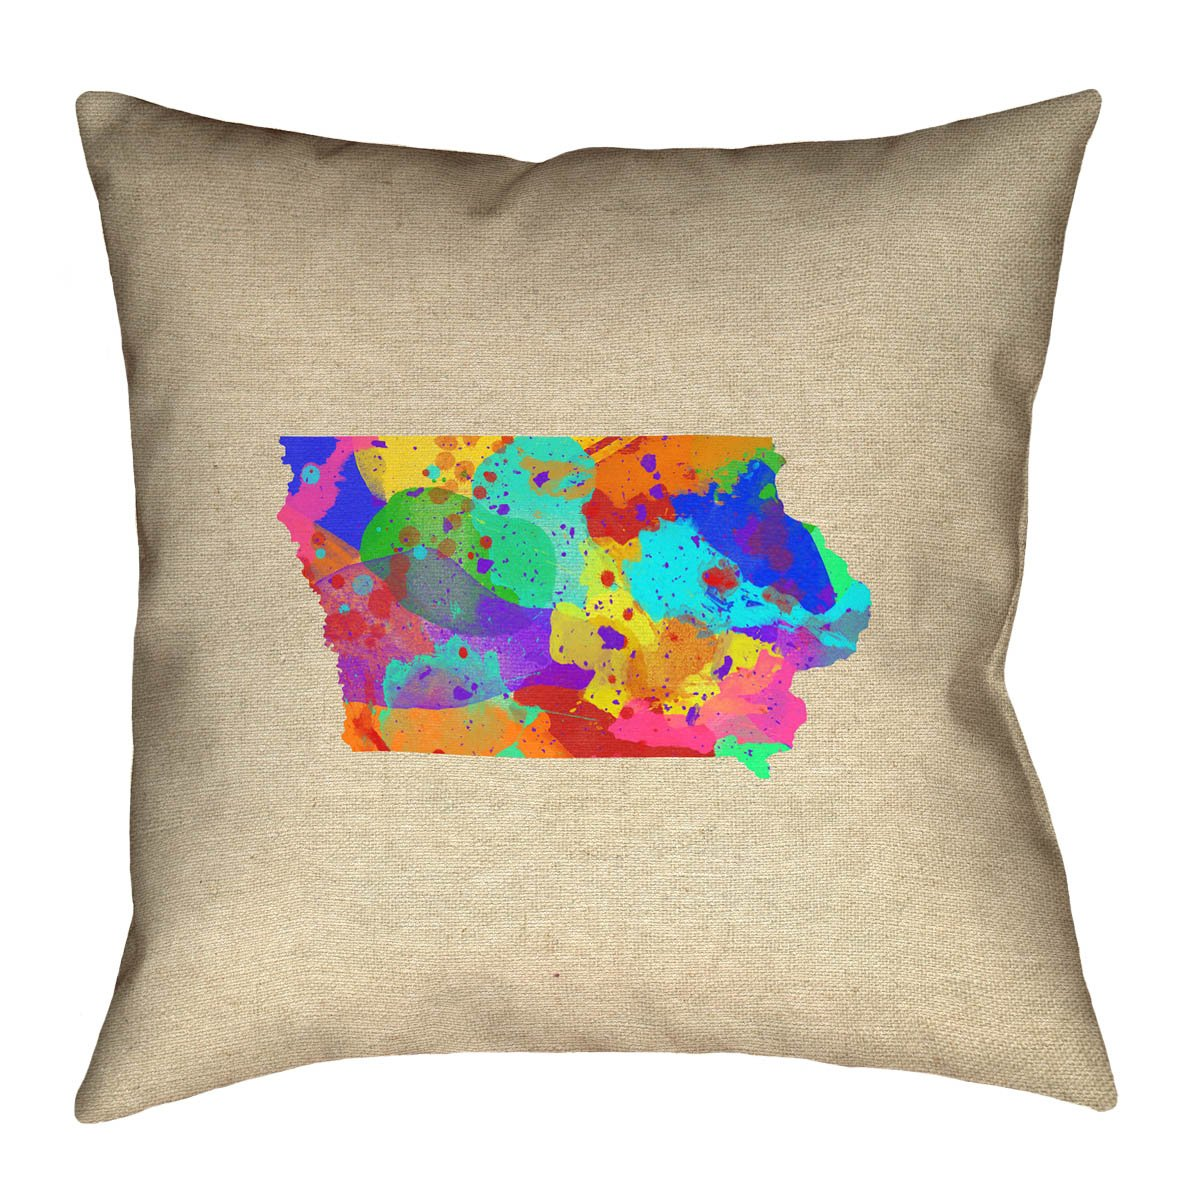 ArtVerse Katelyn Smith 18 x 18 Cotton Twill Double Sided Print with Concealed Zipper /& Insert Iowa Watercolor Pillow